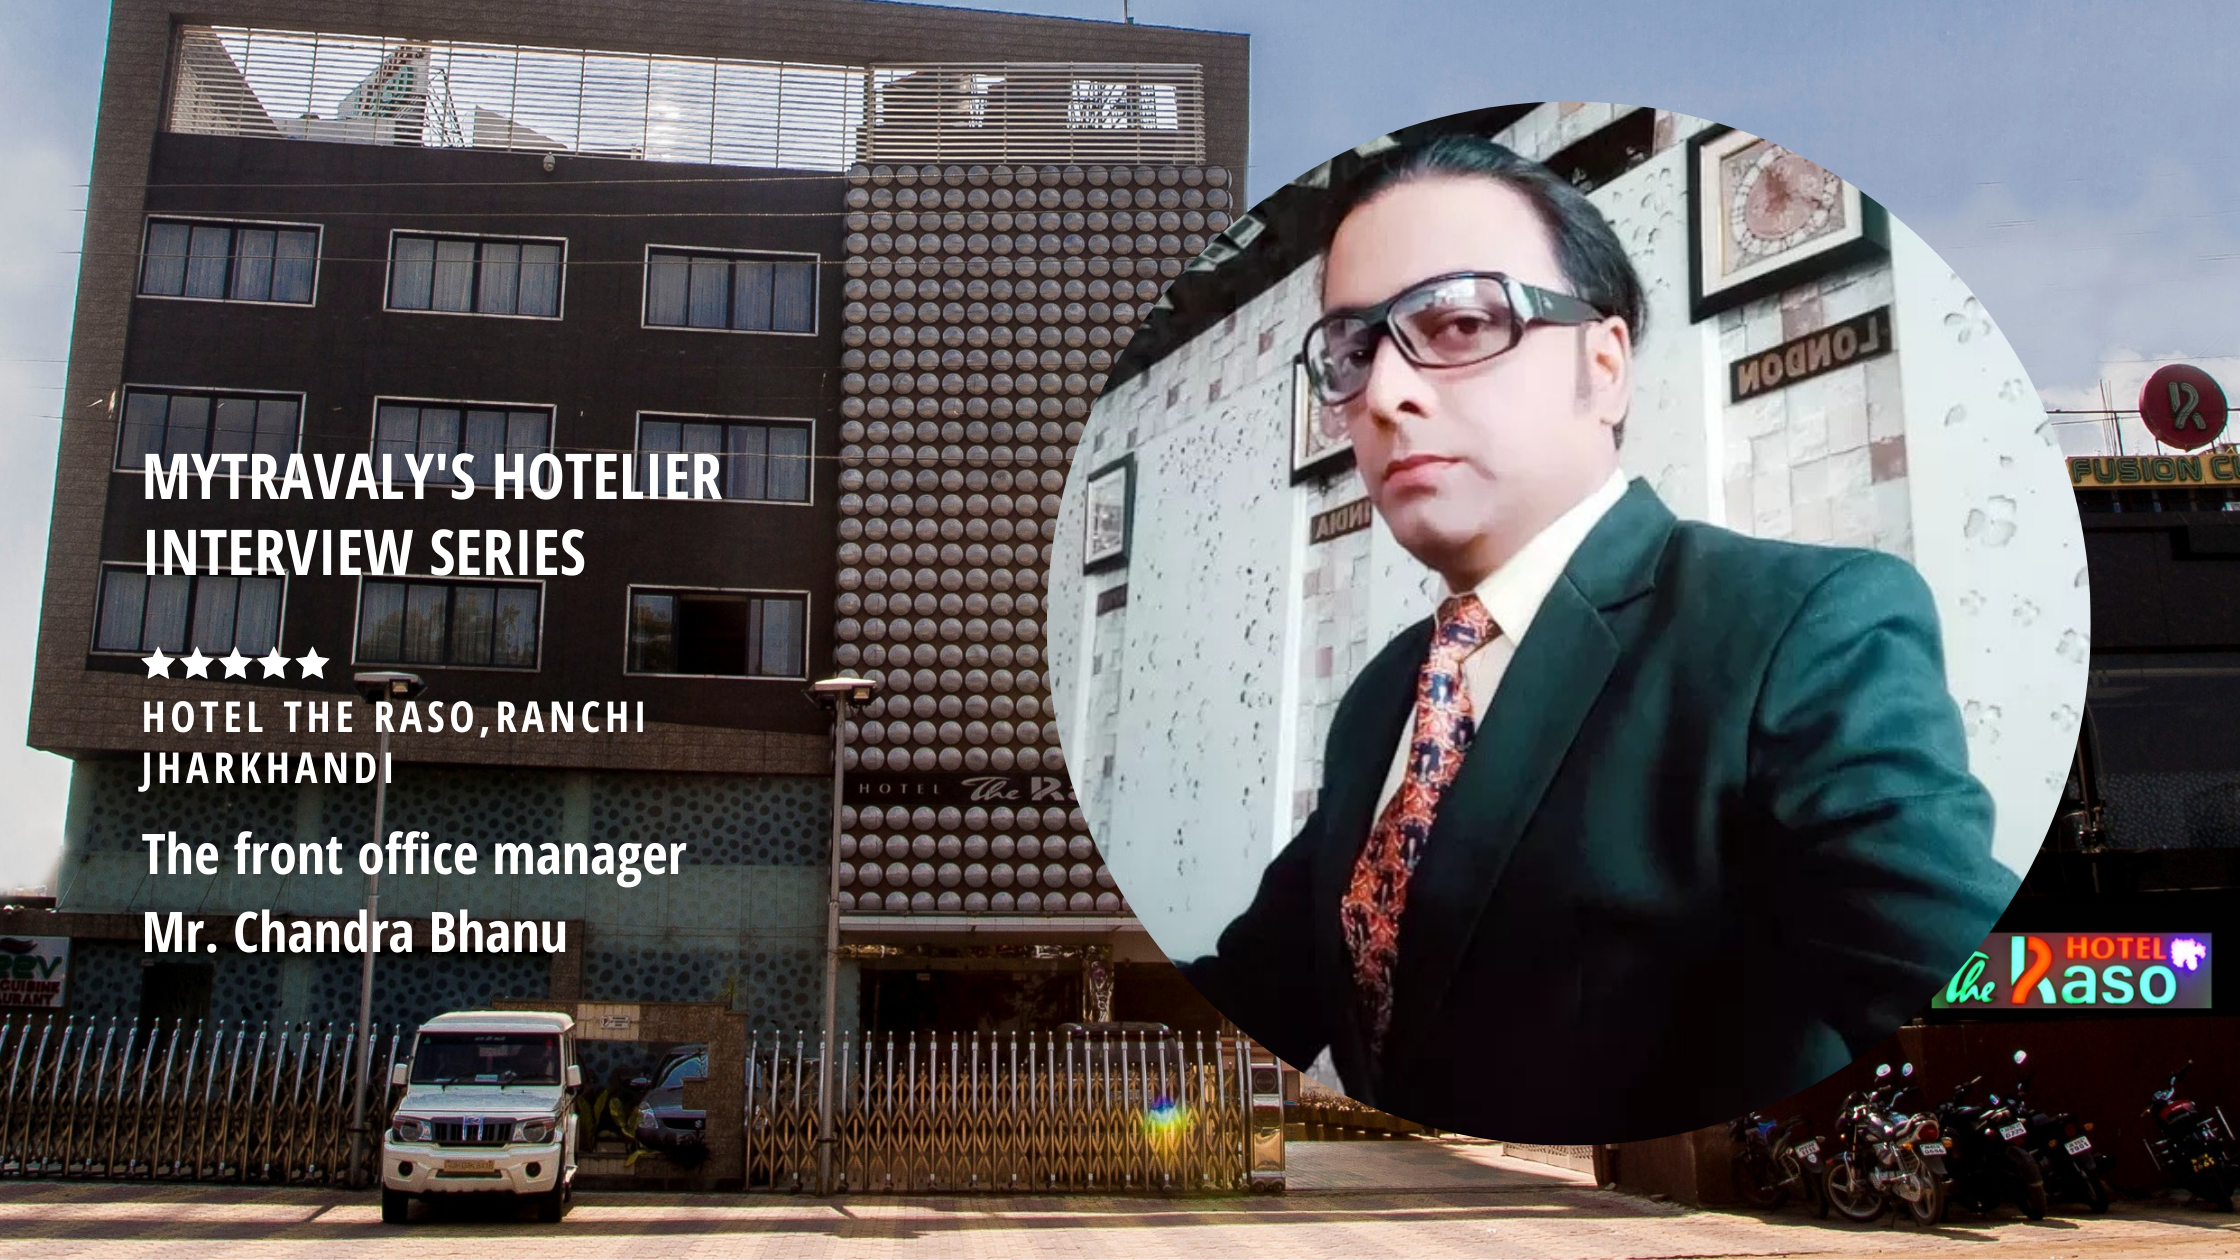 MyTravaly's Hotelier Interview Series-Hotel The Raso,Ranchi Jharkhand